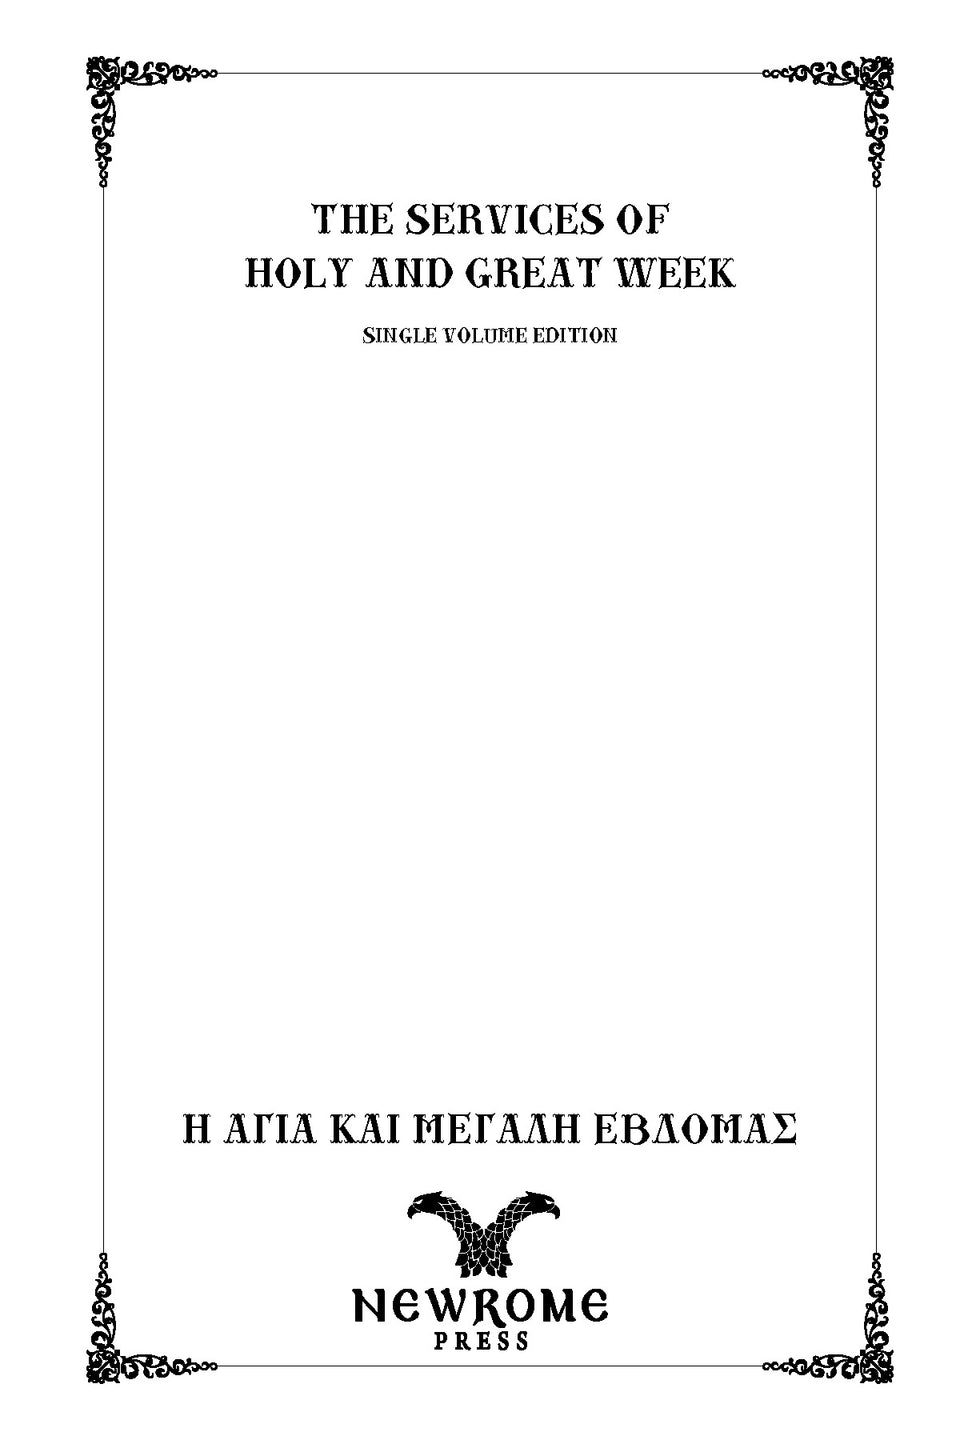 Great and Holy Week